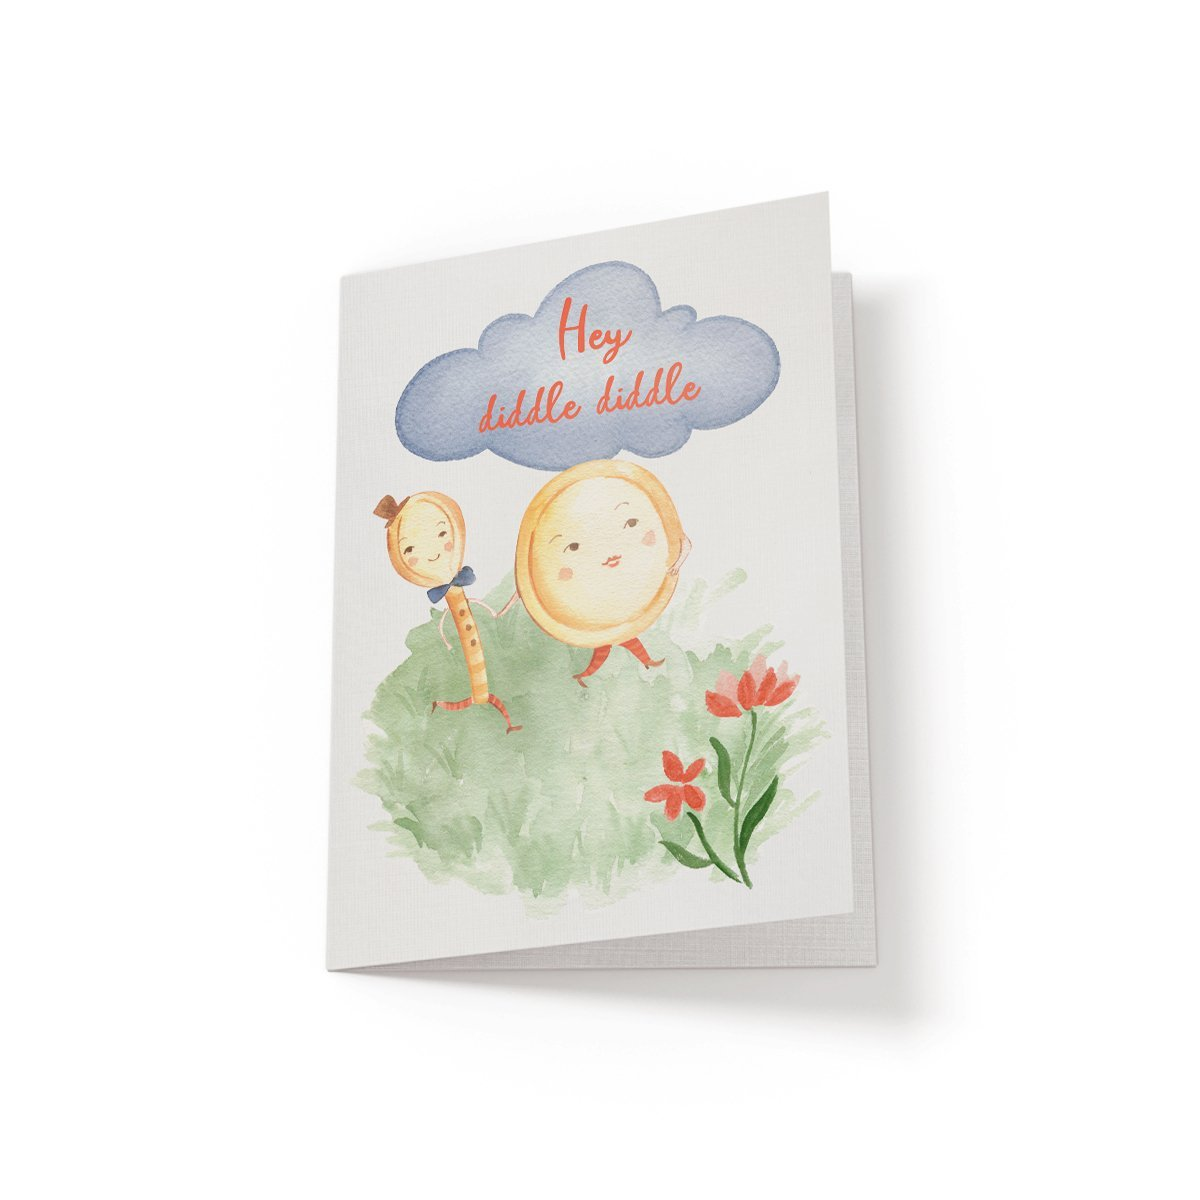 Hey diddle diddle - Greeting Card - Netties Expressions